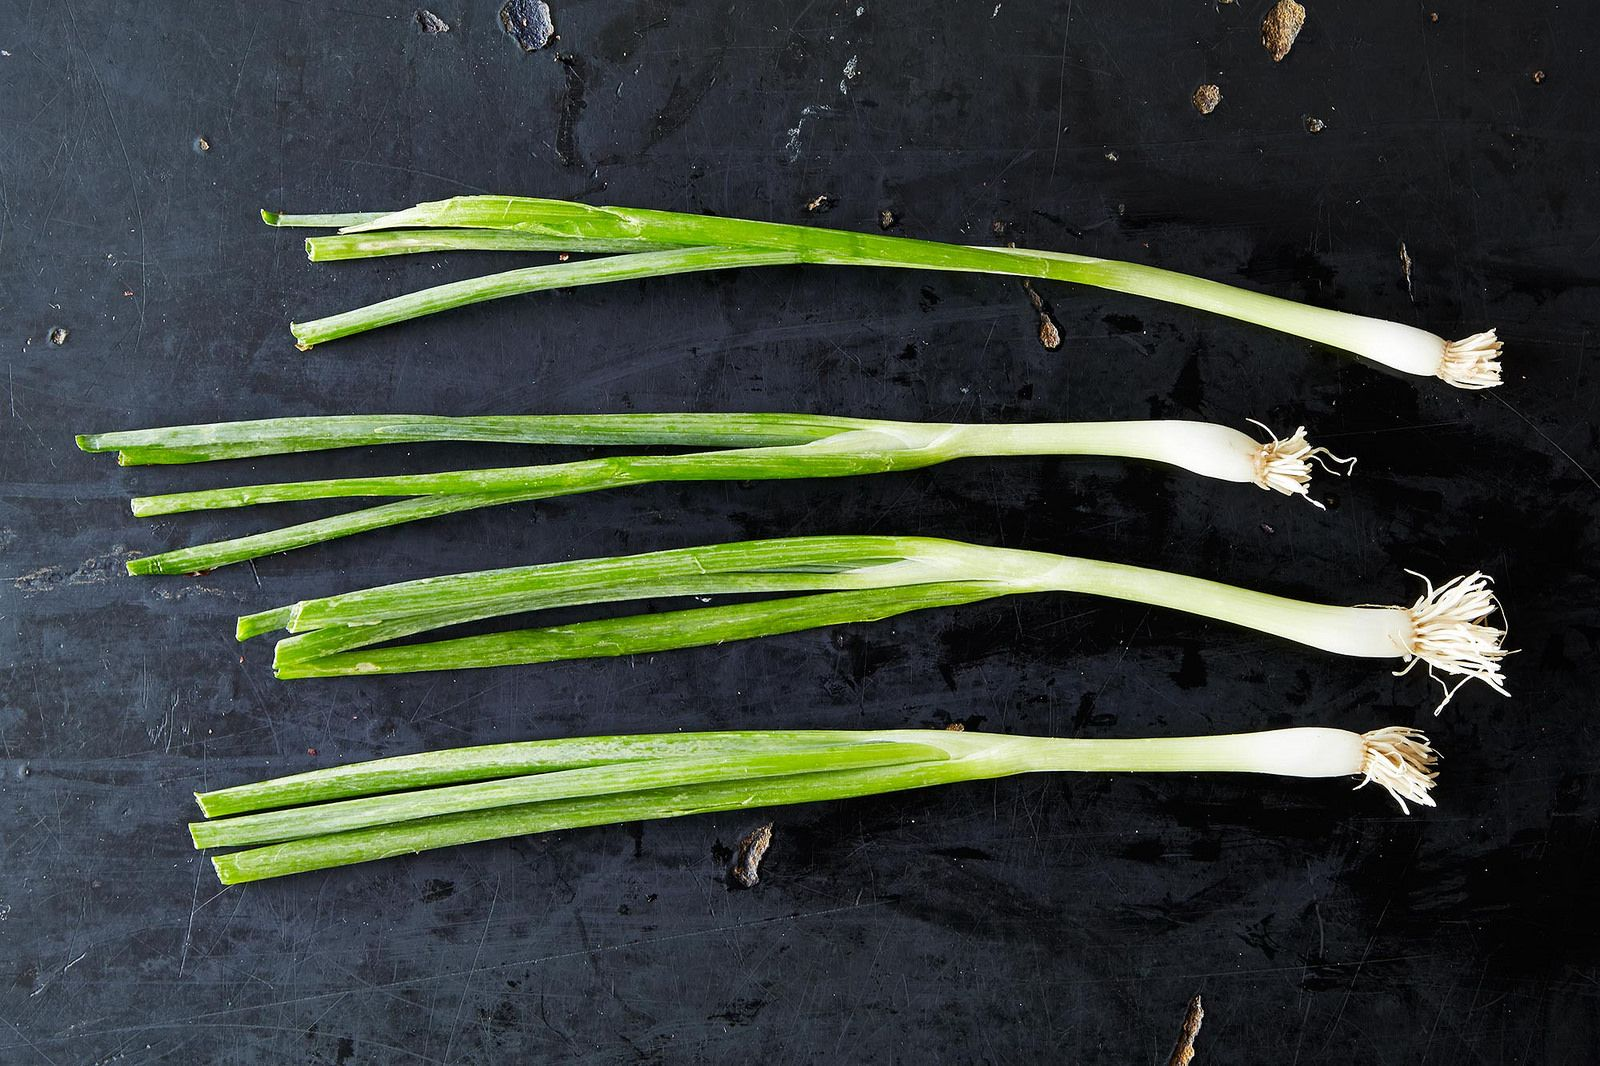 Scallions and 4 Ways to Use Them, from Food52